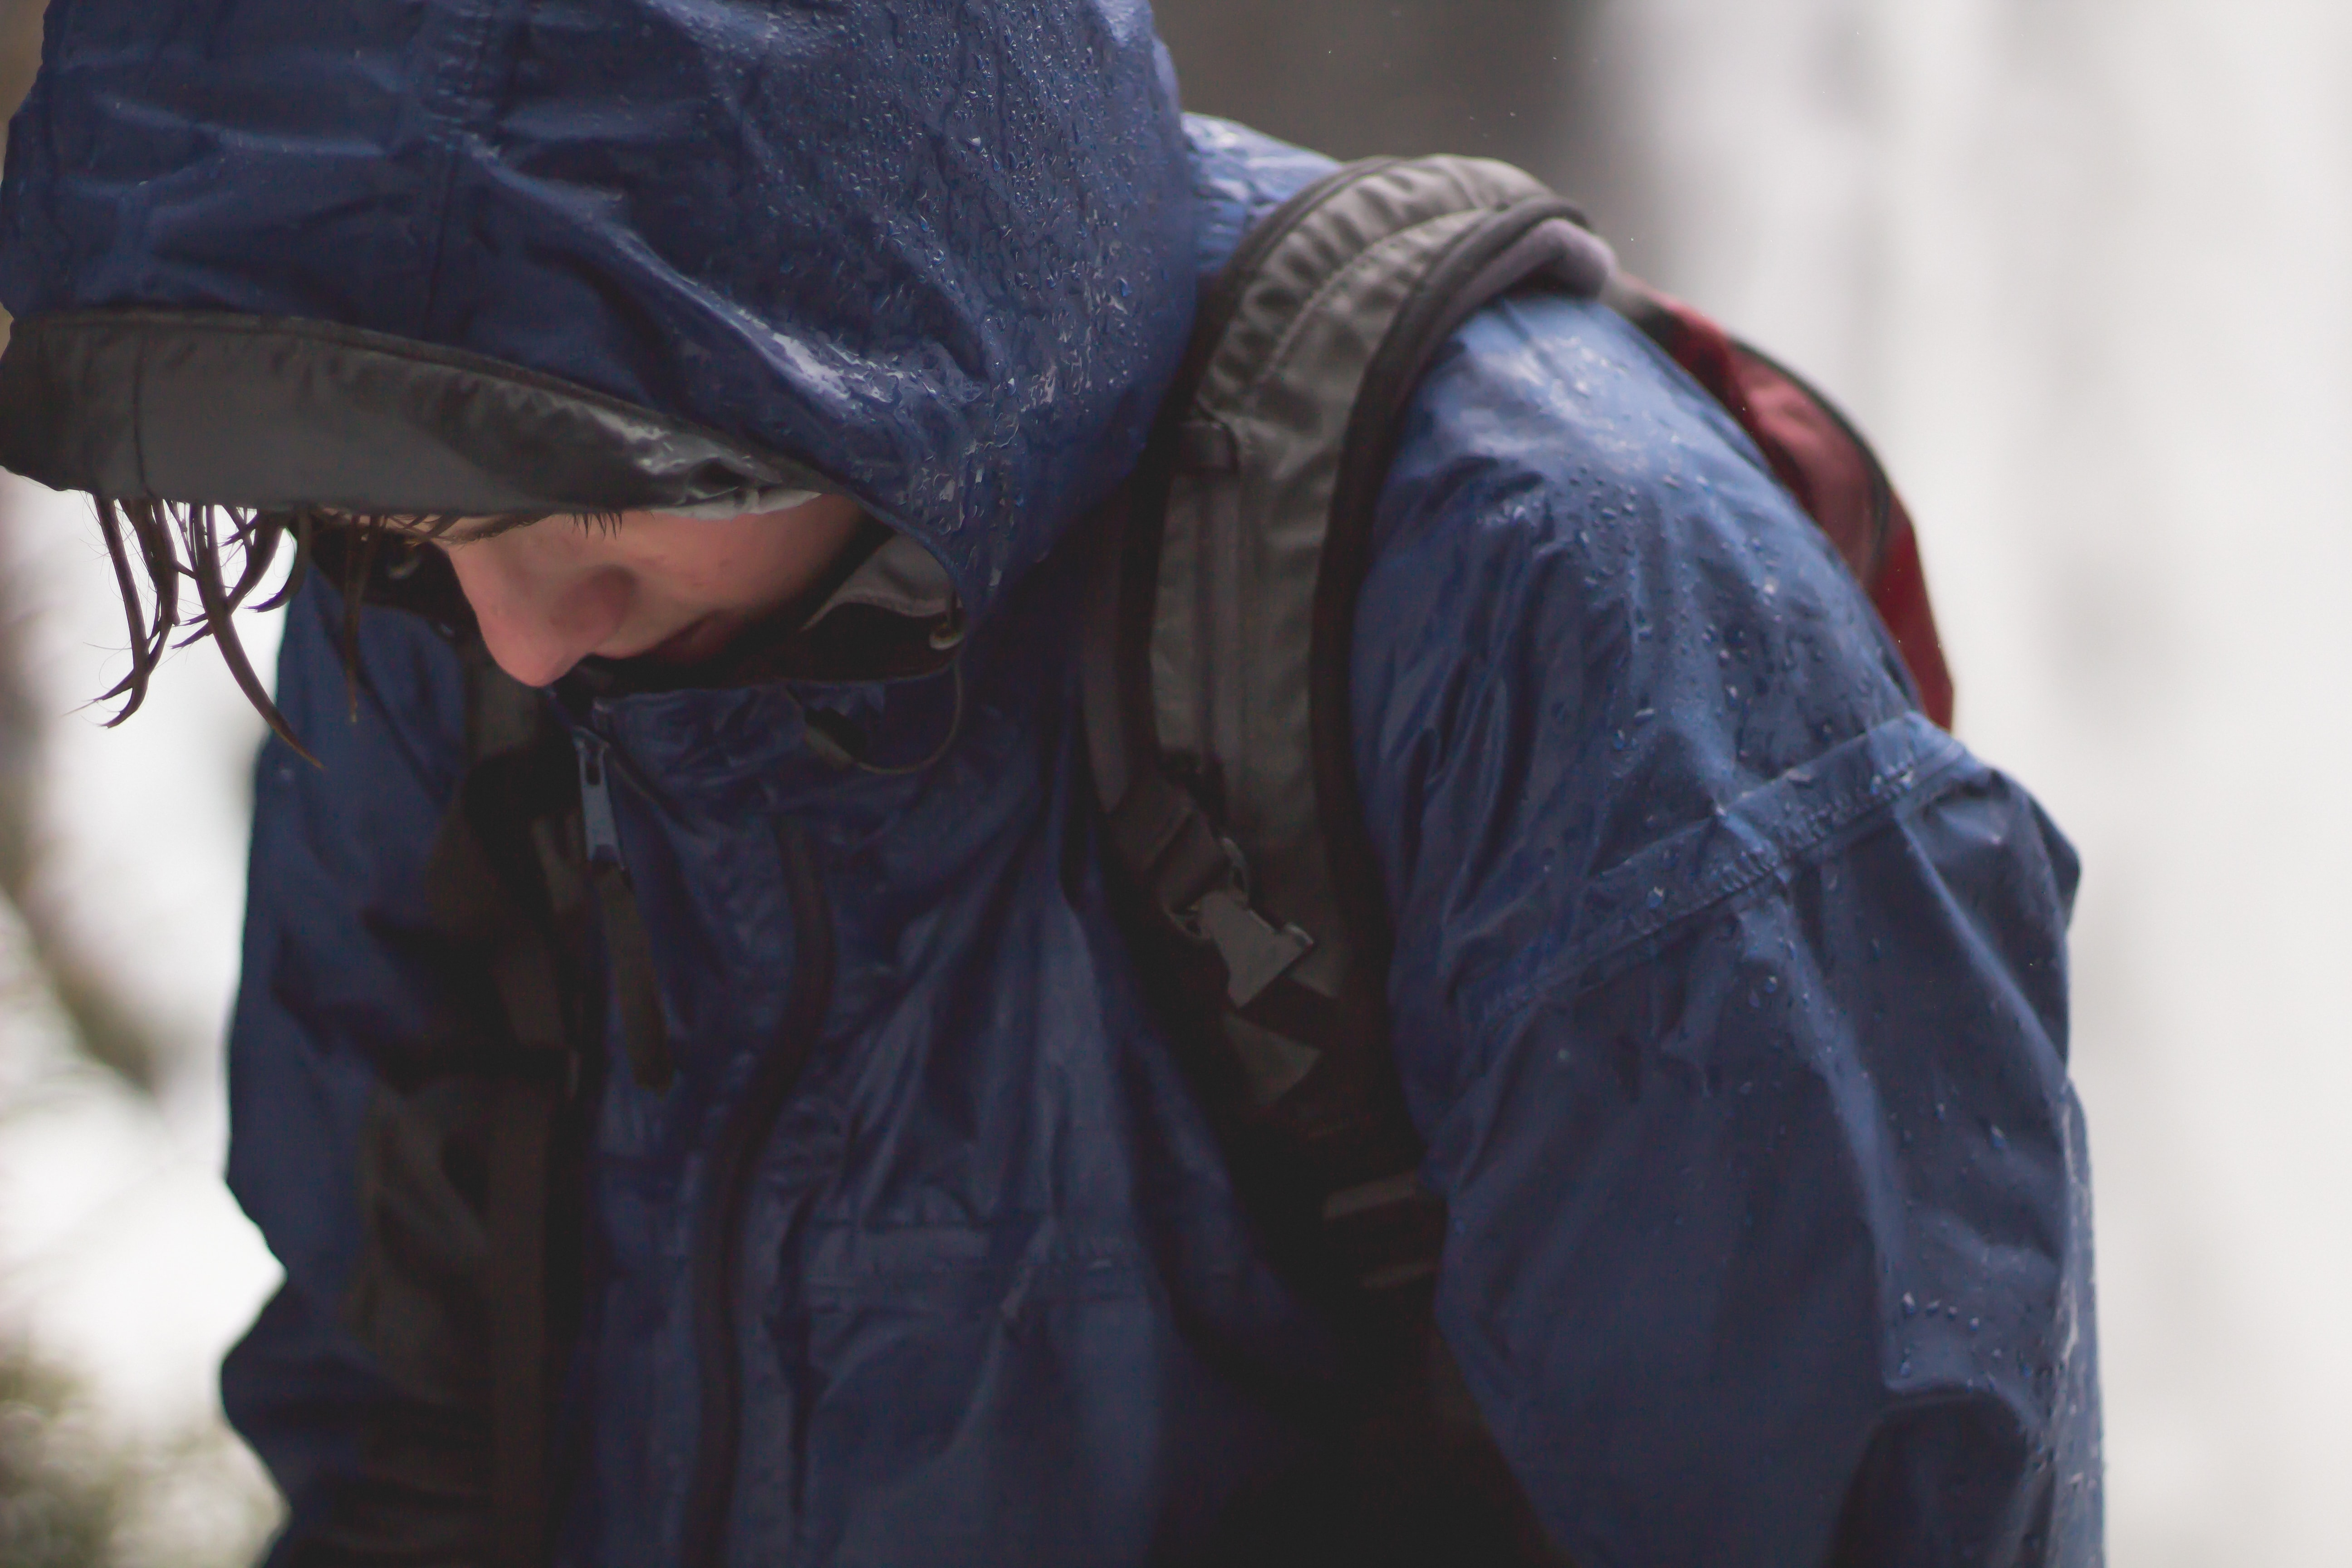 A wet person in a raincoat and backpack holds their head down